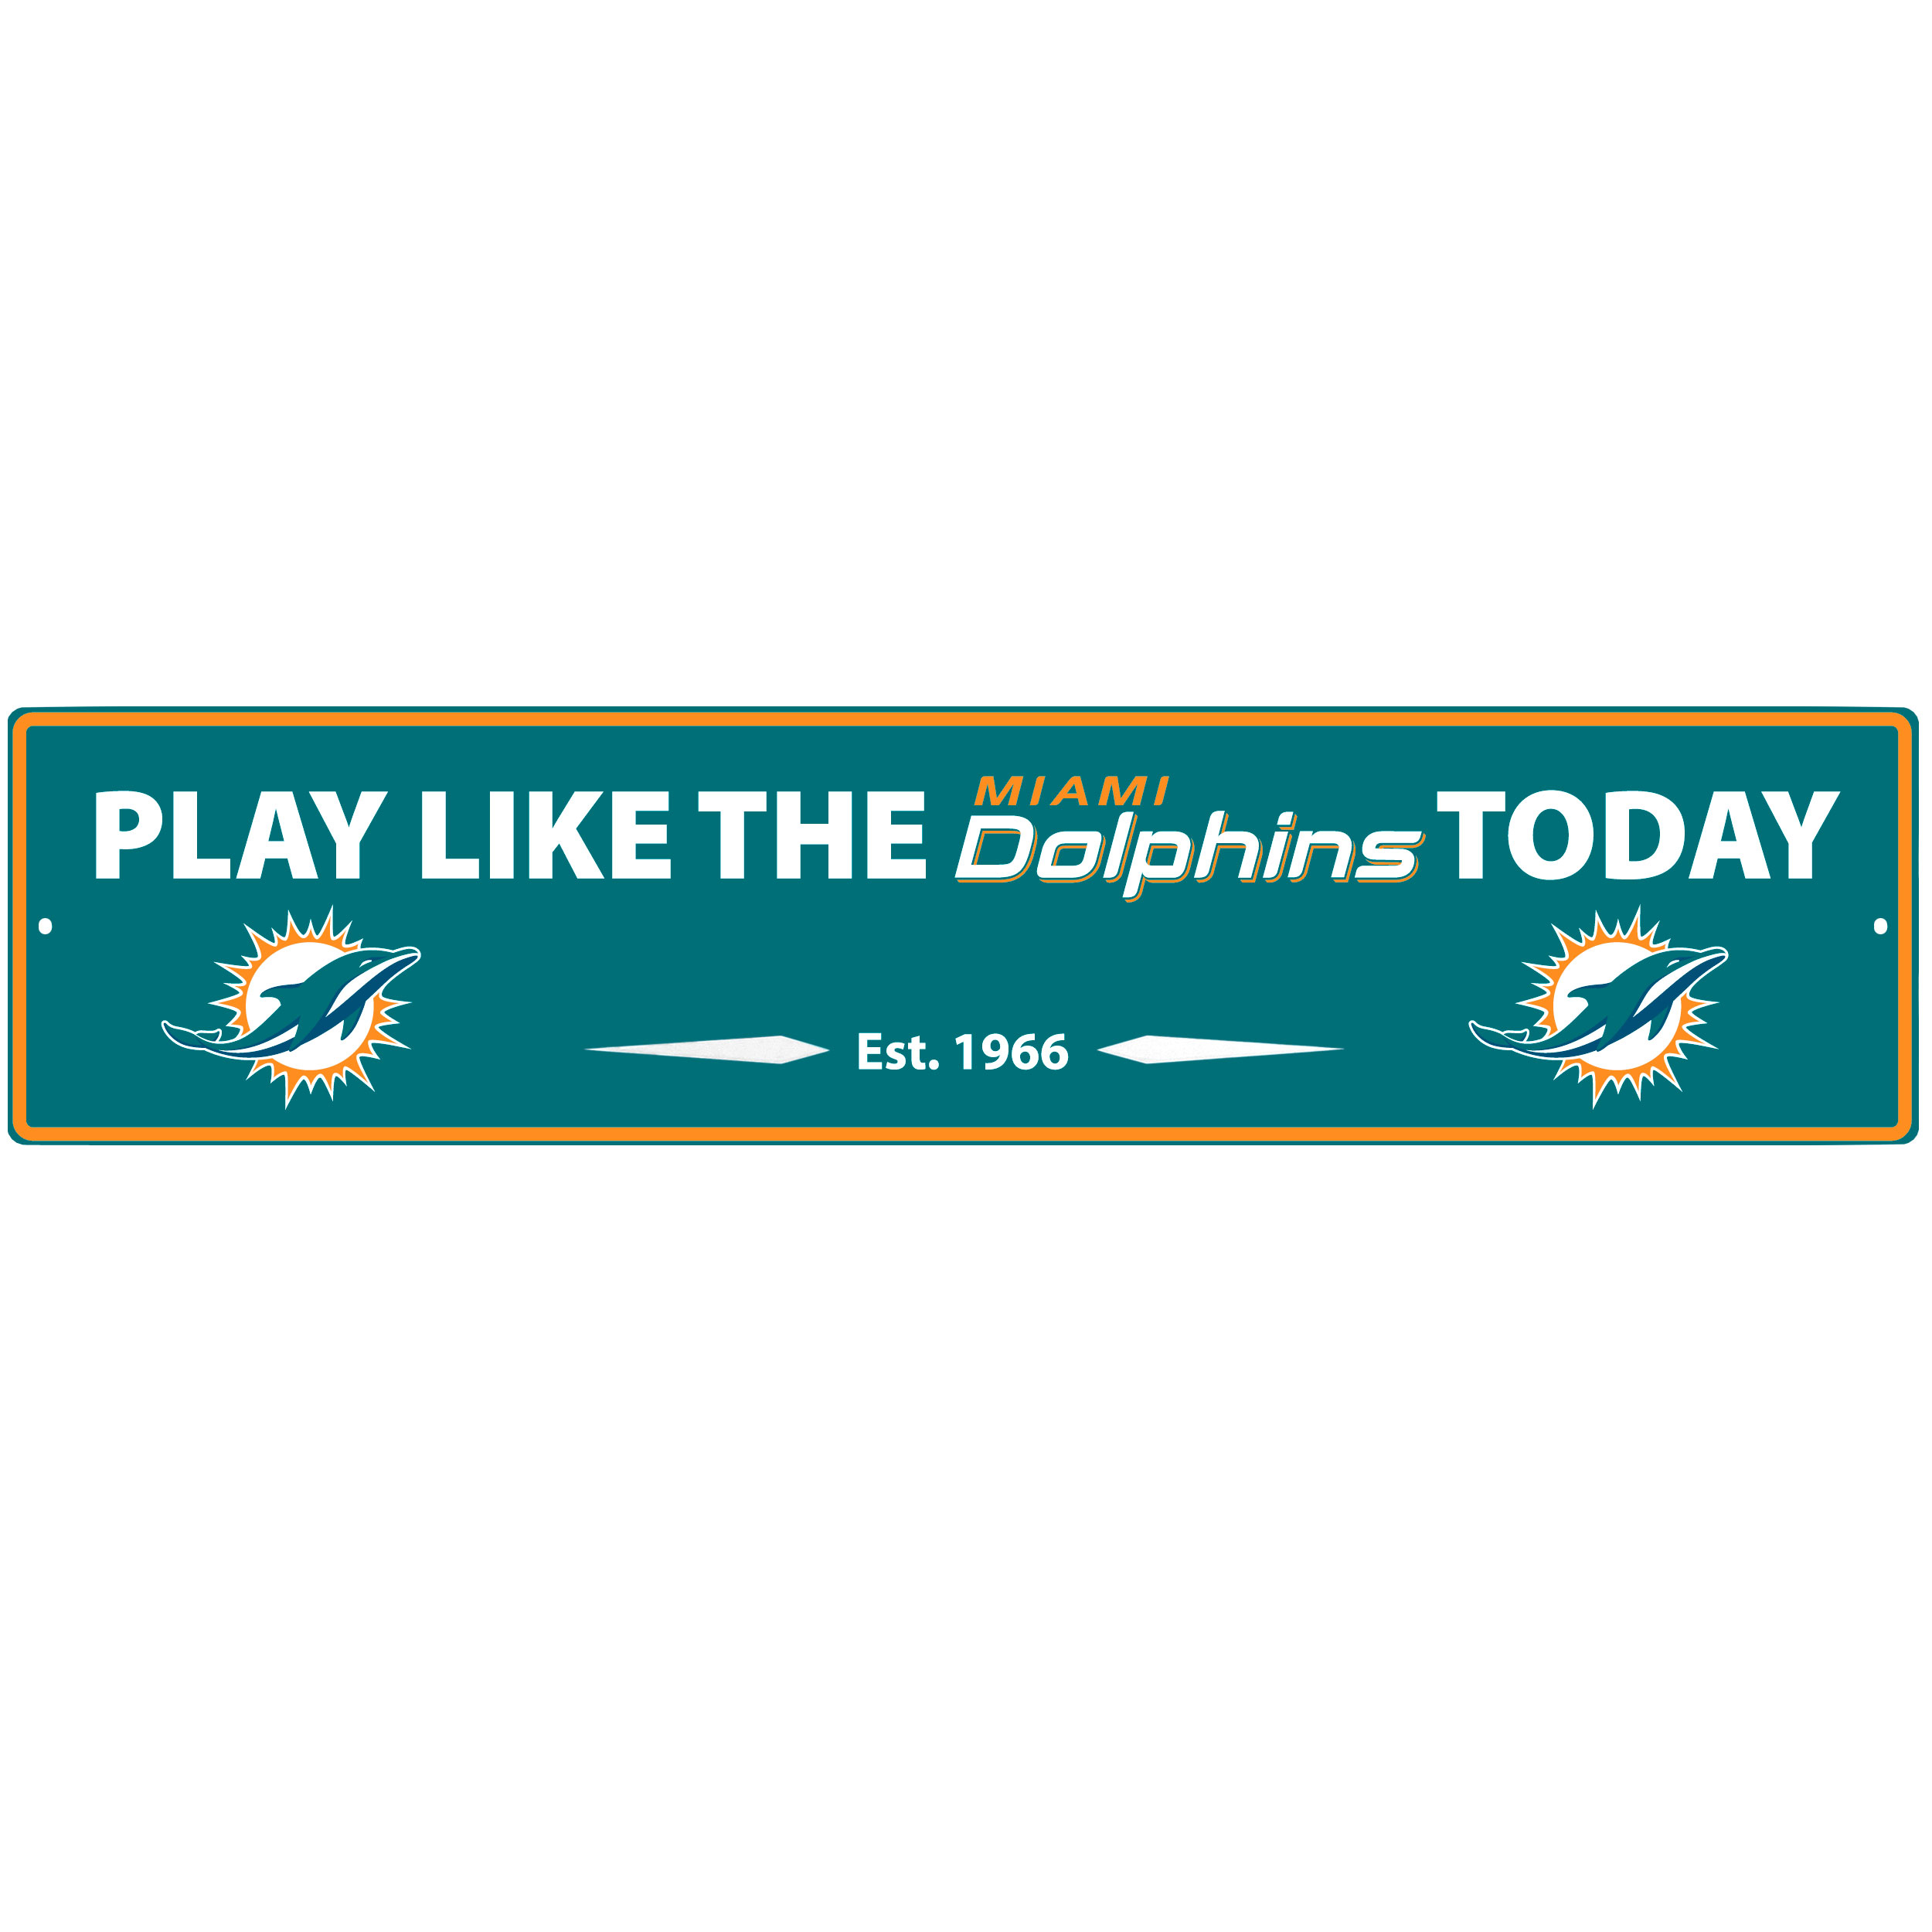 Miami Dolphins Street Sign Wall Plaque - This motivational plaque is perfect for hanging over the doorway of your fan cave reminding you to play like your champion Miami Dolphins! The sign is 20 inches wide and made of light-weight stamped aluminum. The bright team colors and classic design make this a must-have home décor accessory that would look great in any game room, living room or office!